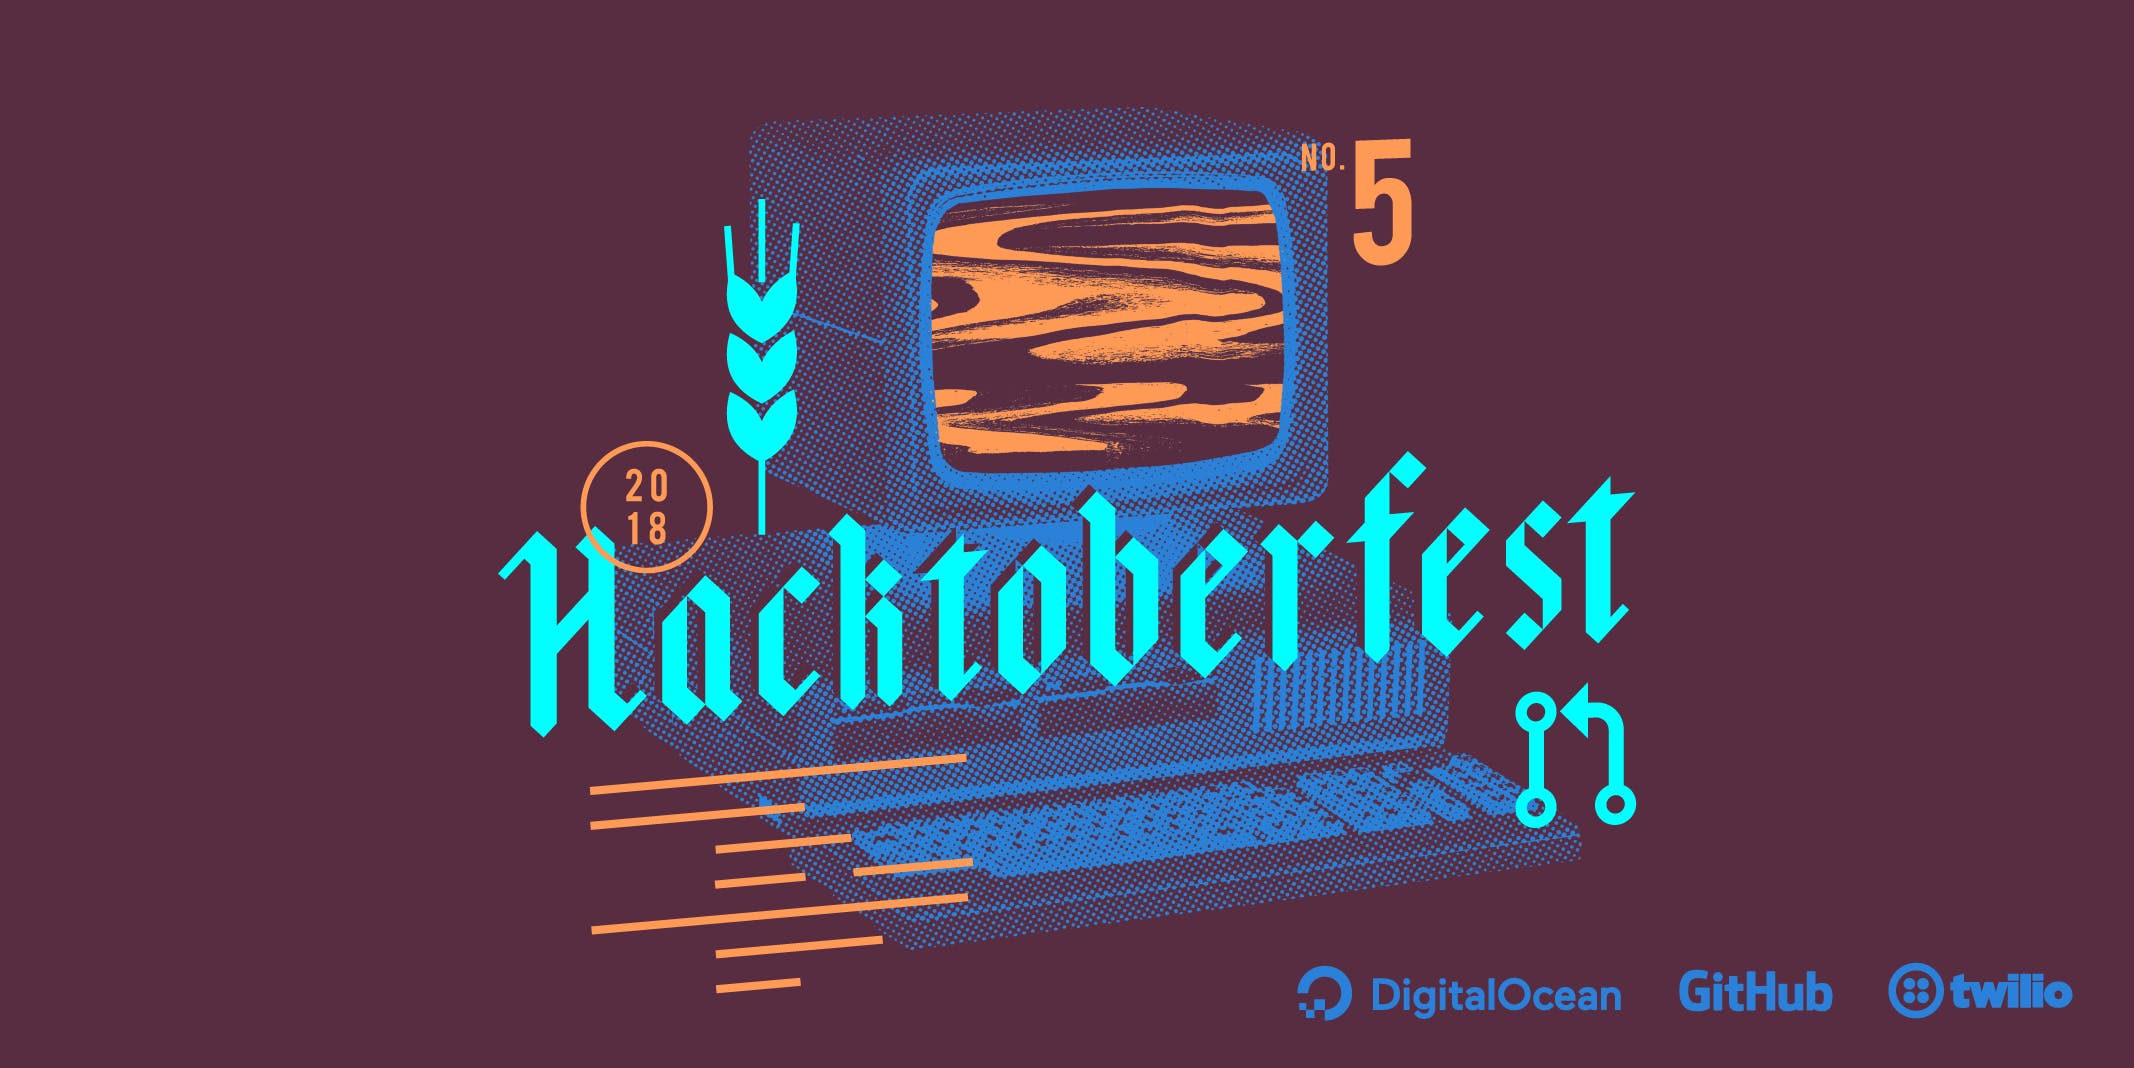 Hacktoberfest 2018 illustration